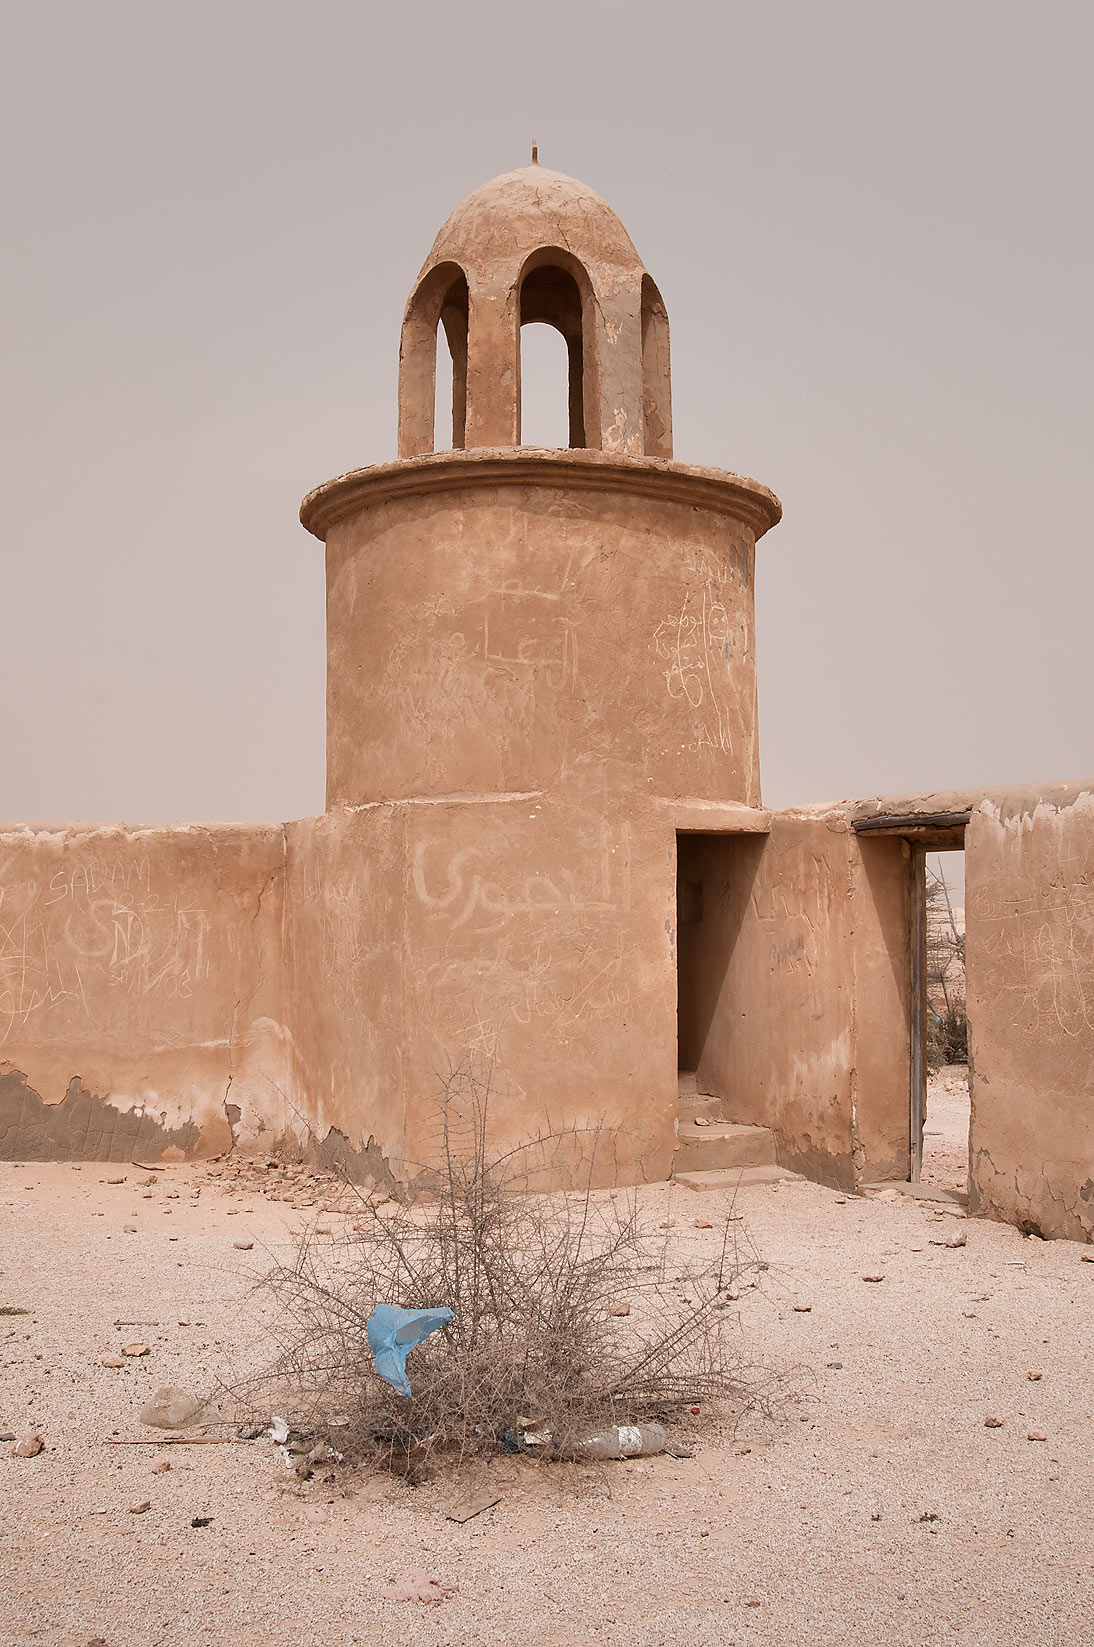 Butti Shota Mosque in old village of Jamilla in Al-Jumayliyah (Aljumileh). Qatar